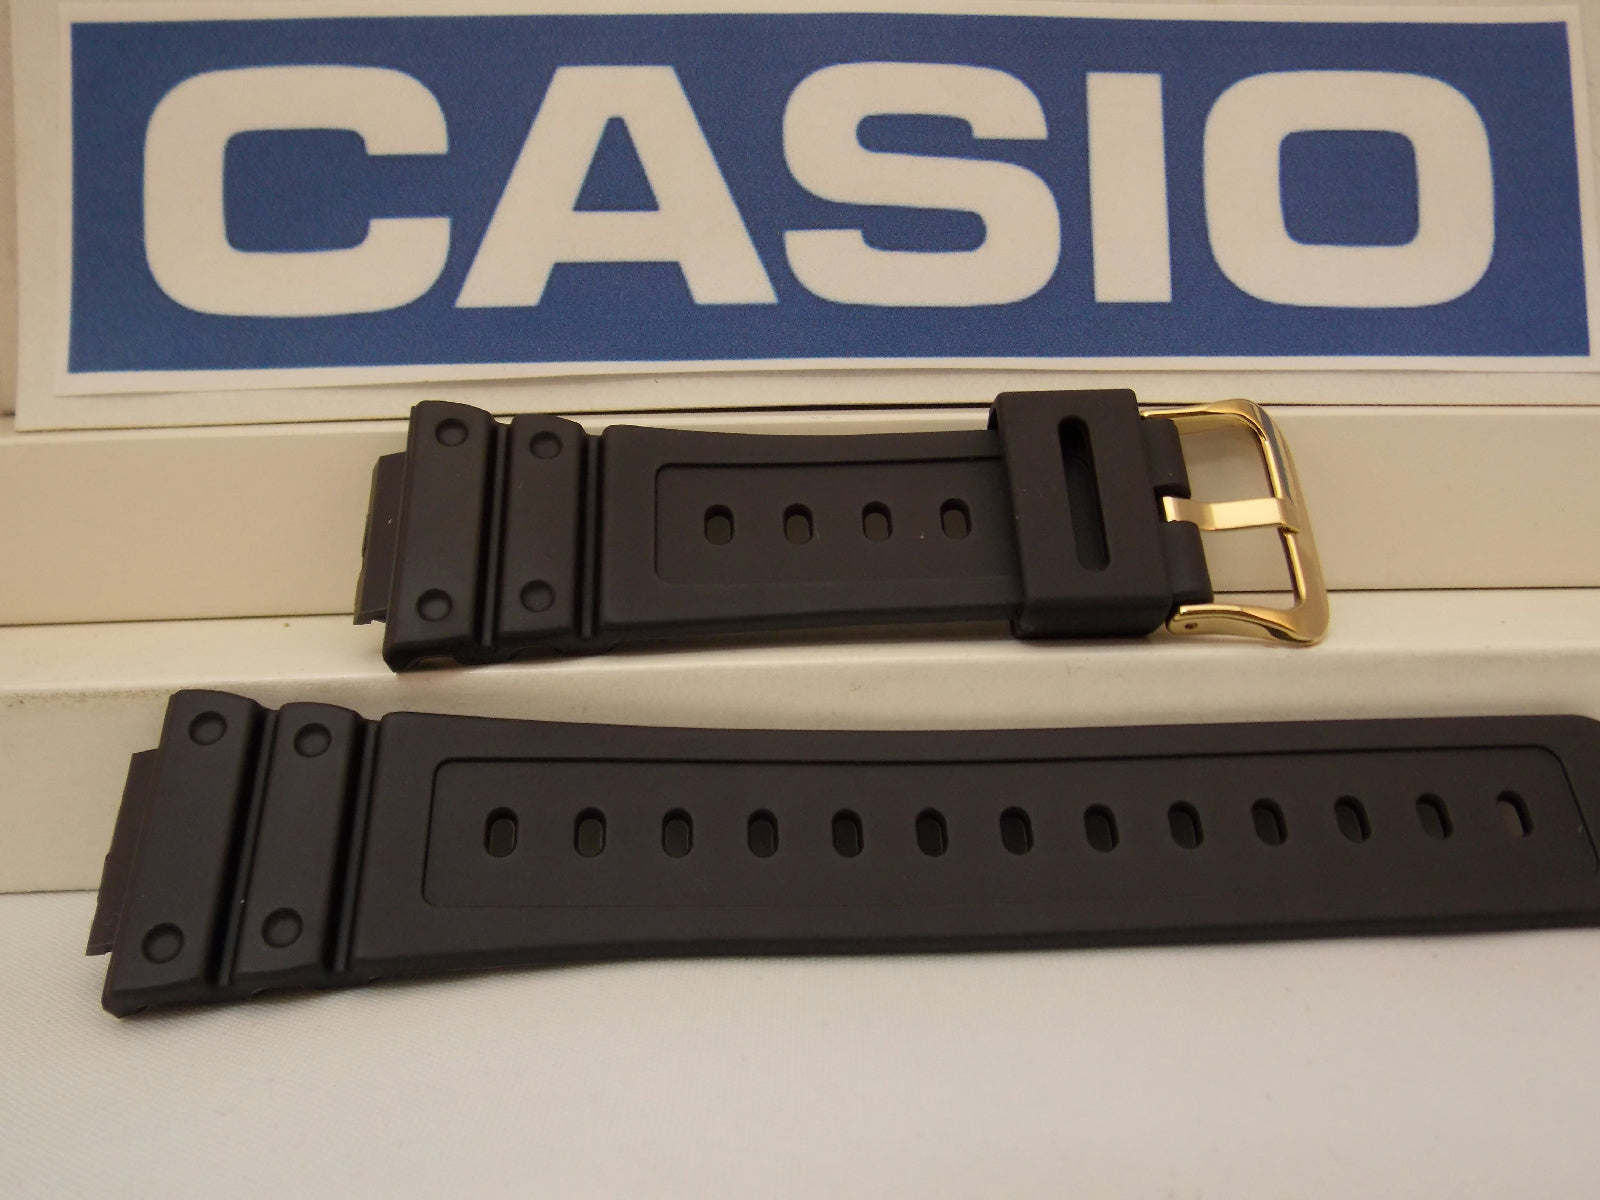 Casio watchband DW-5600 EG-9, DW-5600 P-1  W/Gold Tn Bkl.G-Shock Watchband